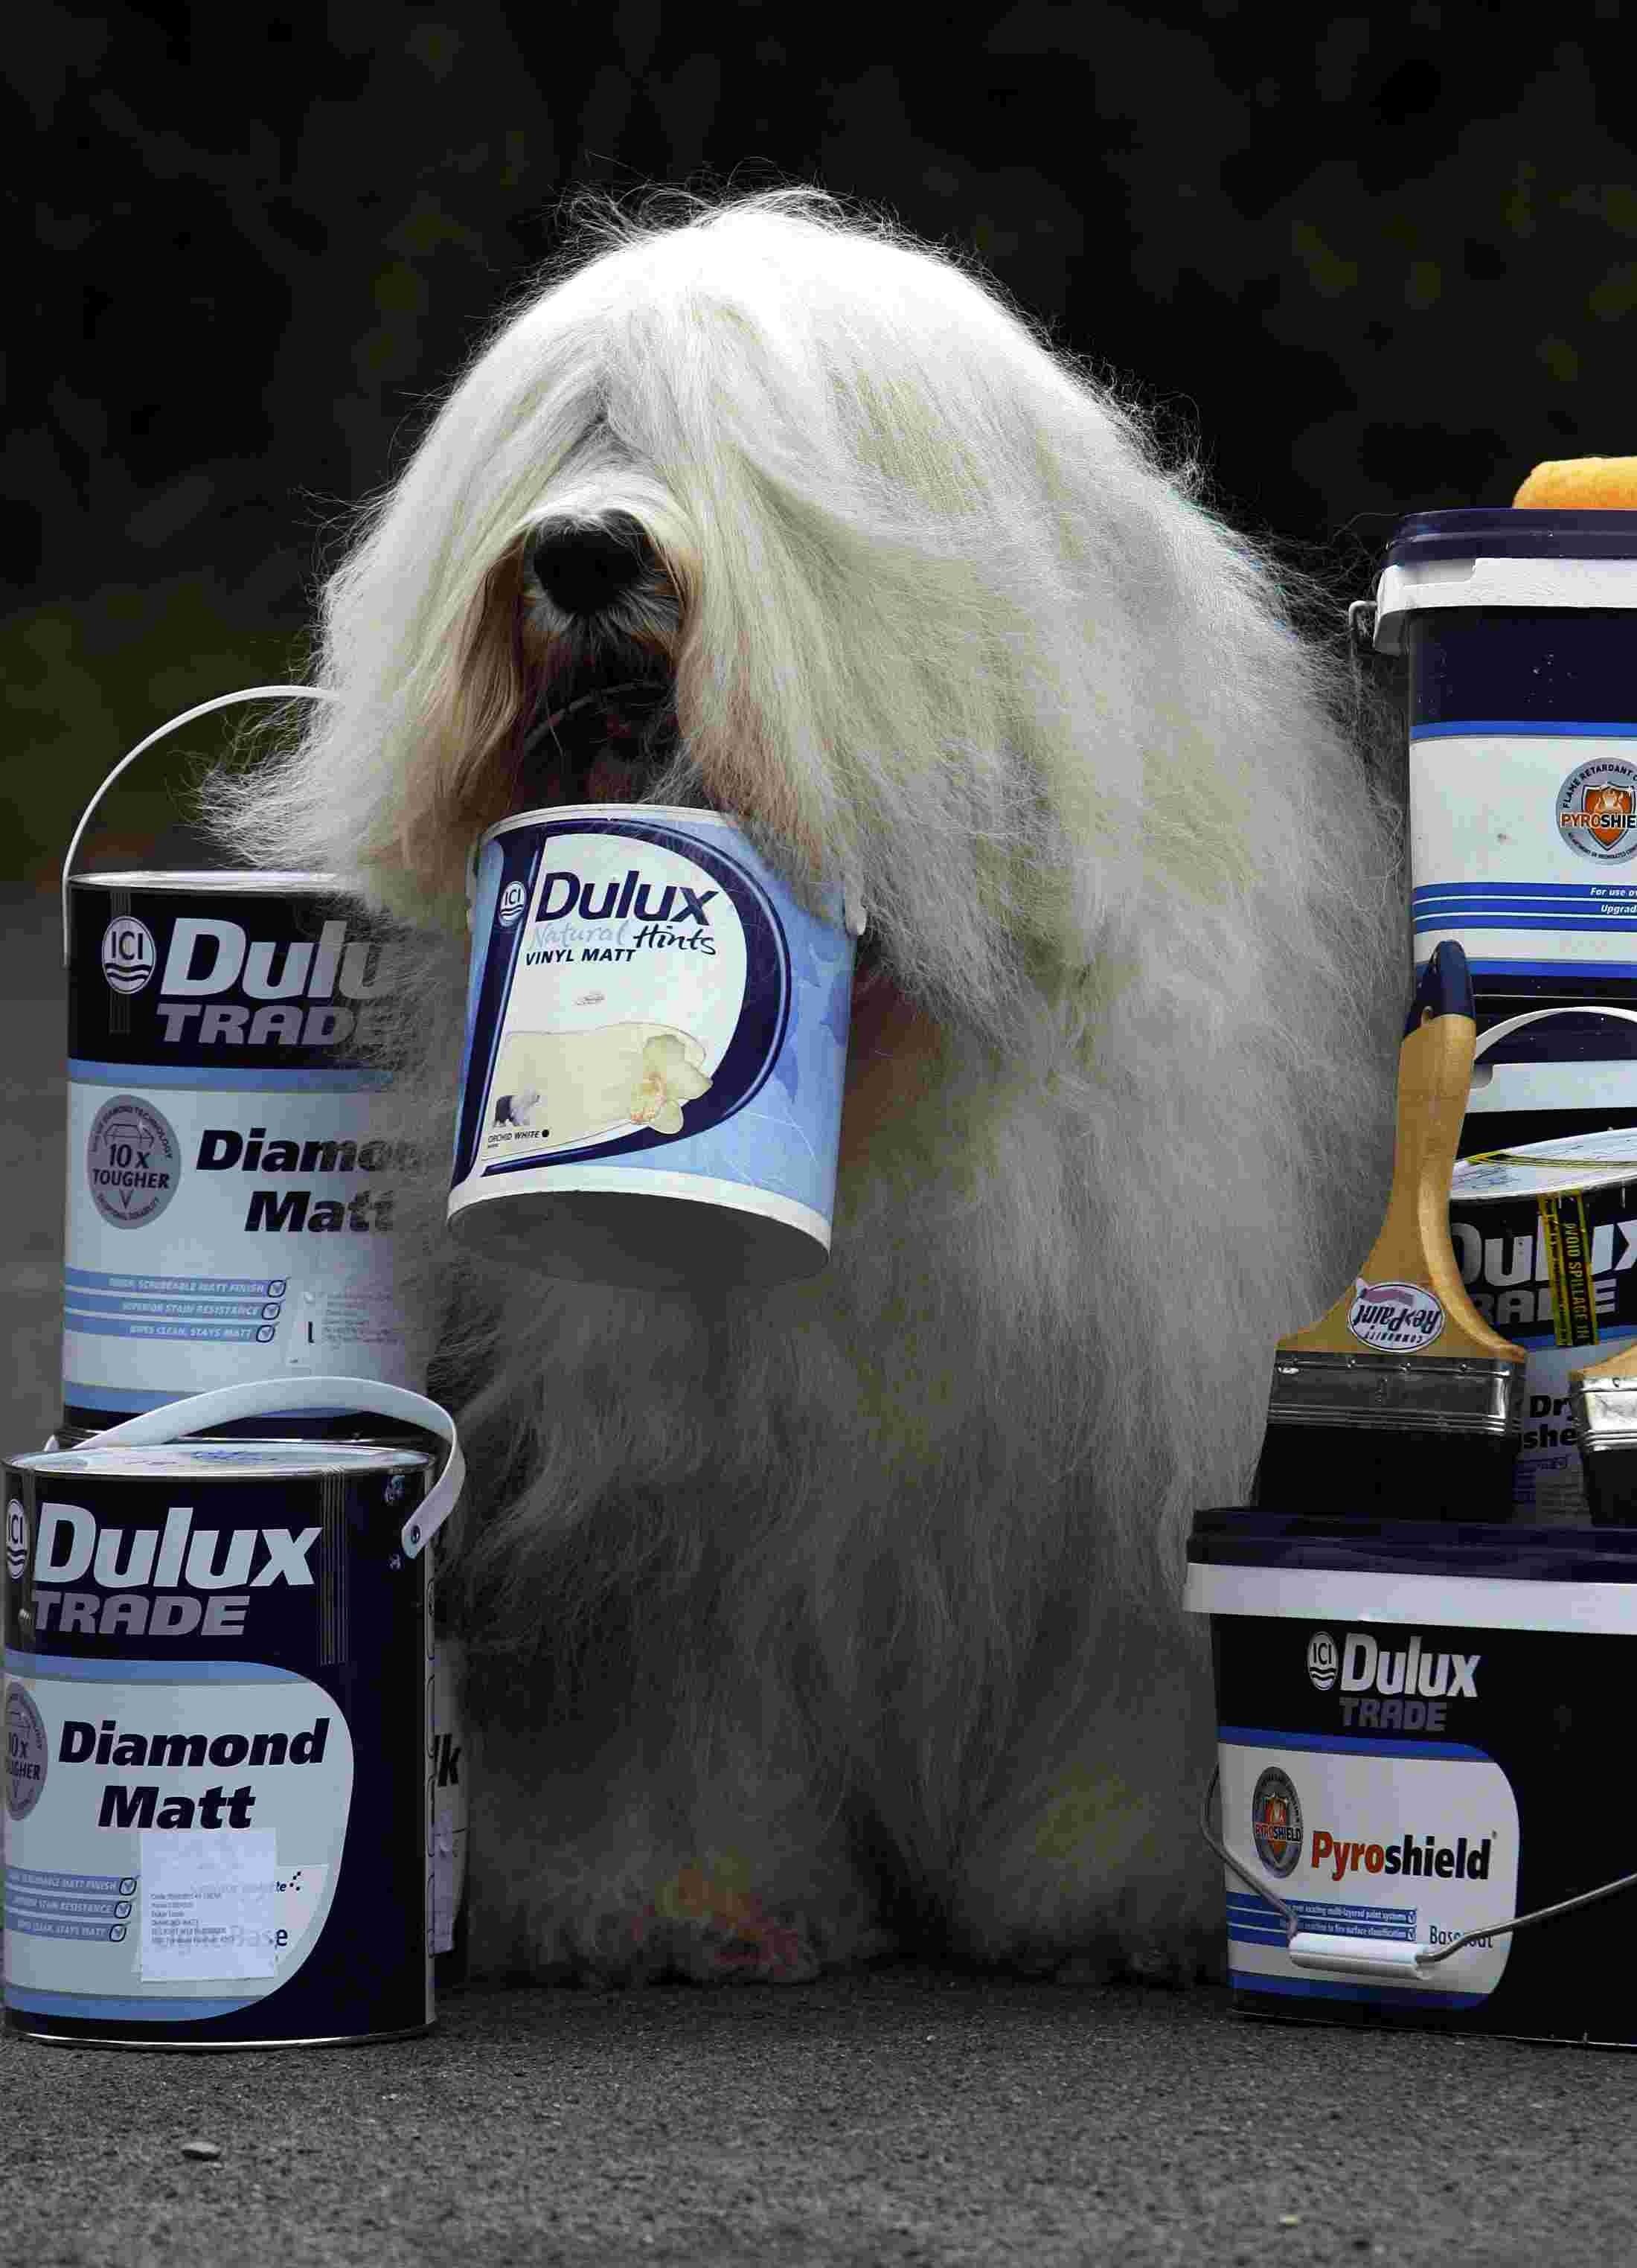 The Dulux dog will be at Wickes Basingstoke this Wednesday